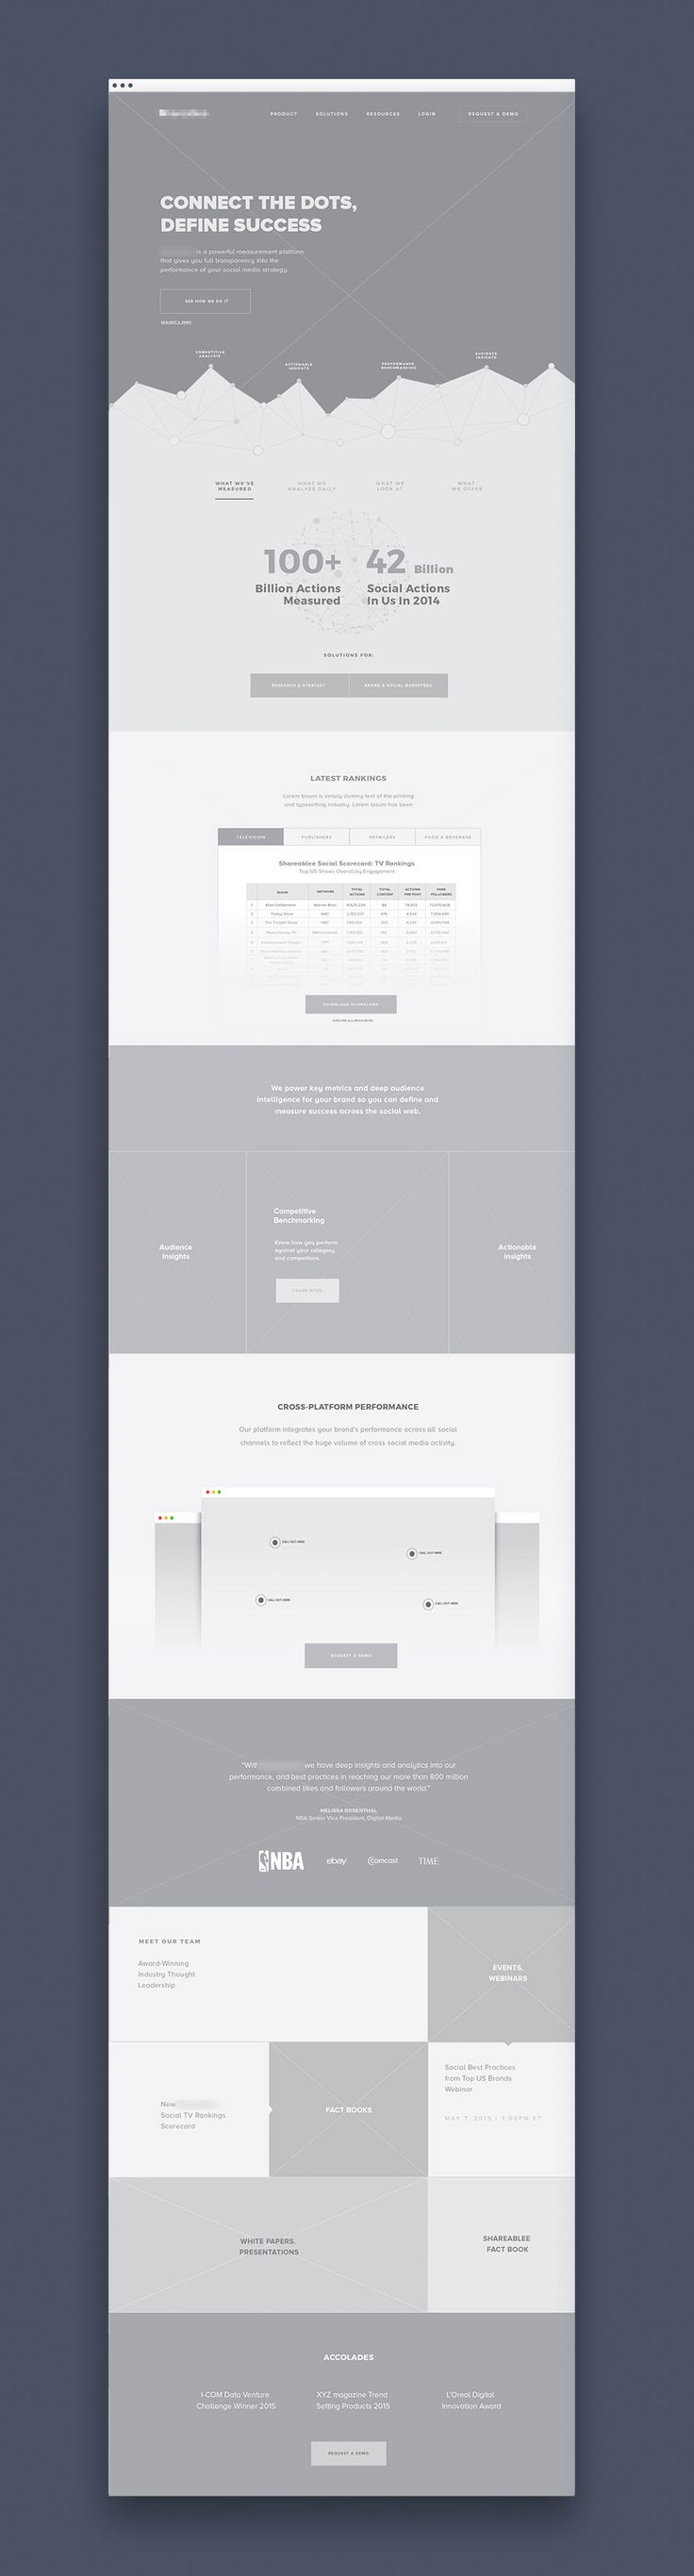 Dribbble - Wireframes.jpg by Michael Pons